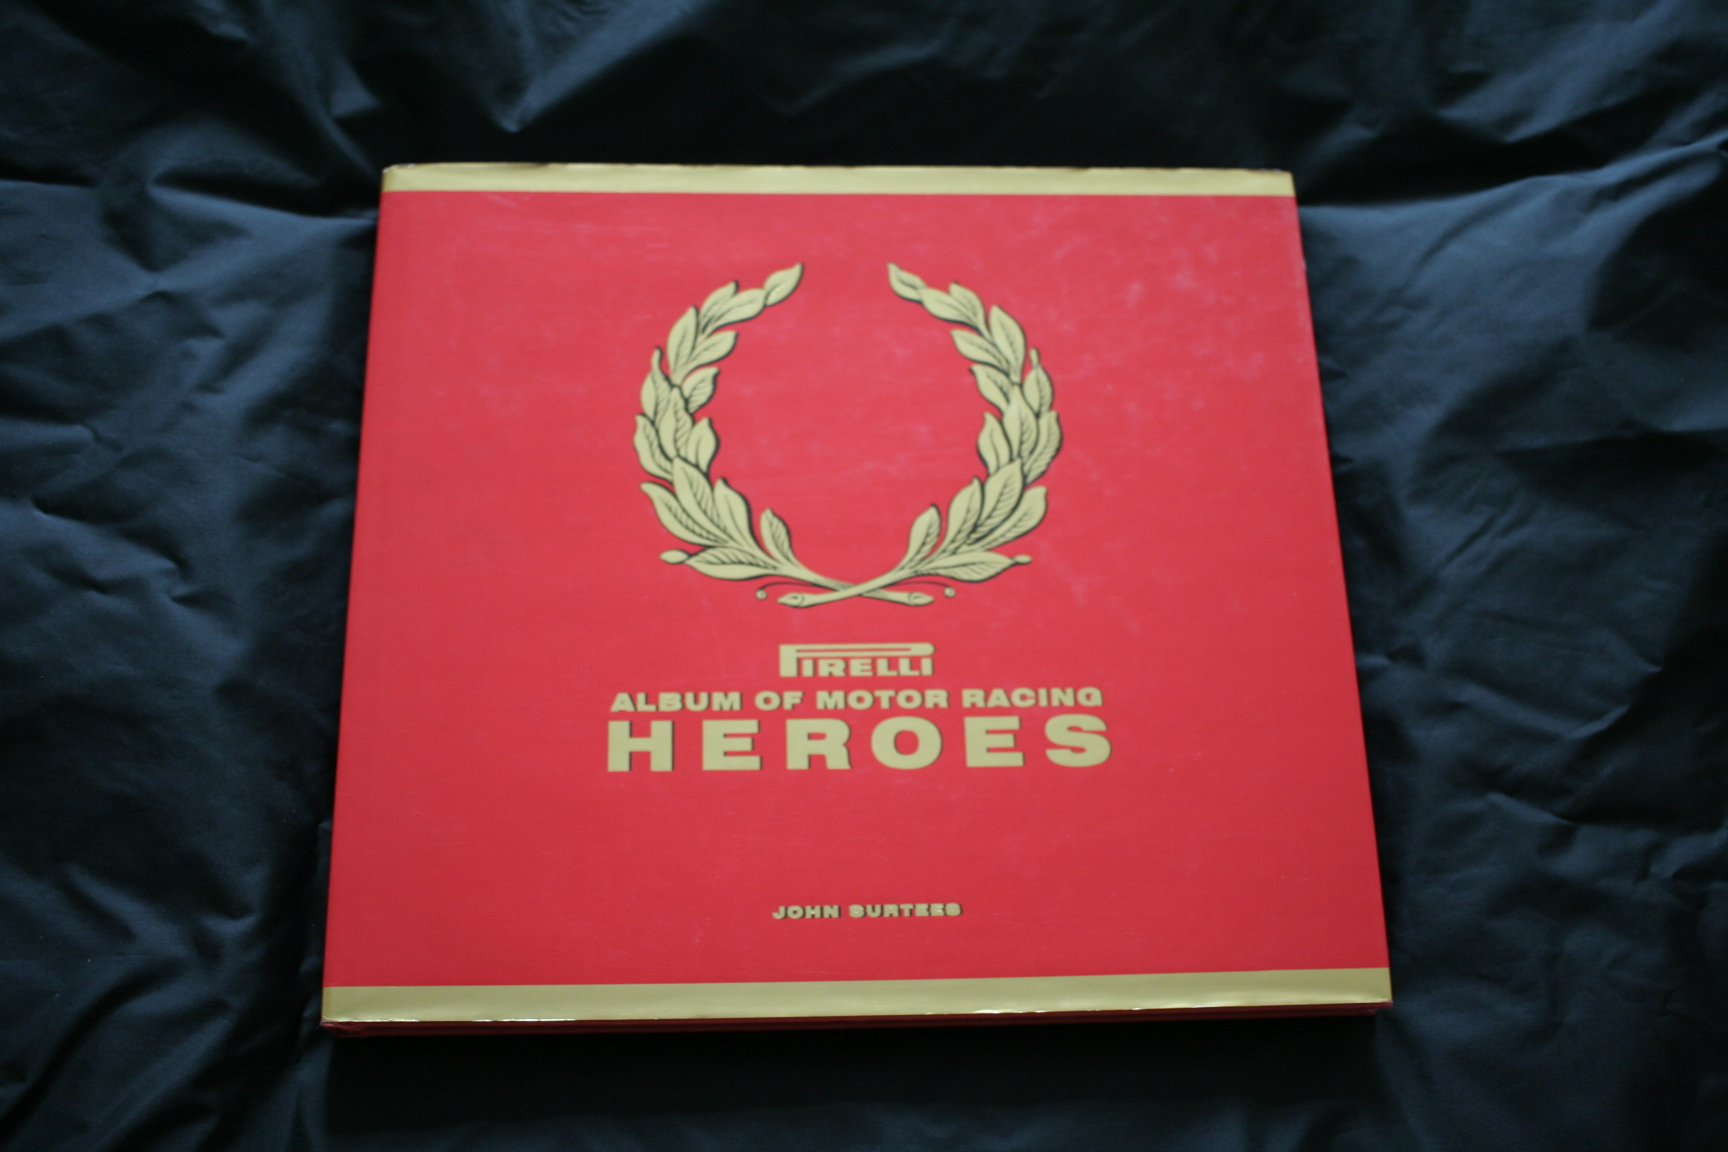 Pirelli Album of Motor Racing Heroes - John Surtees